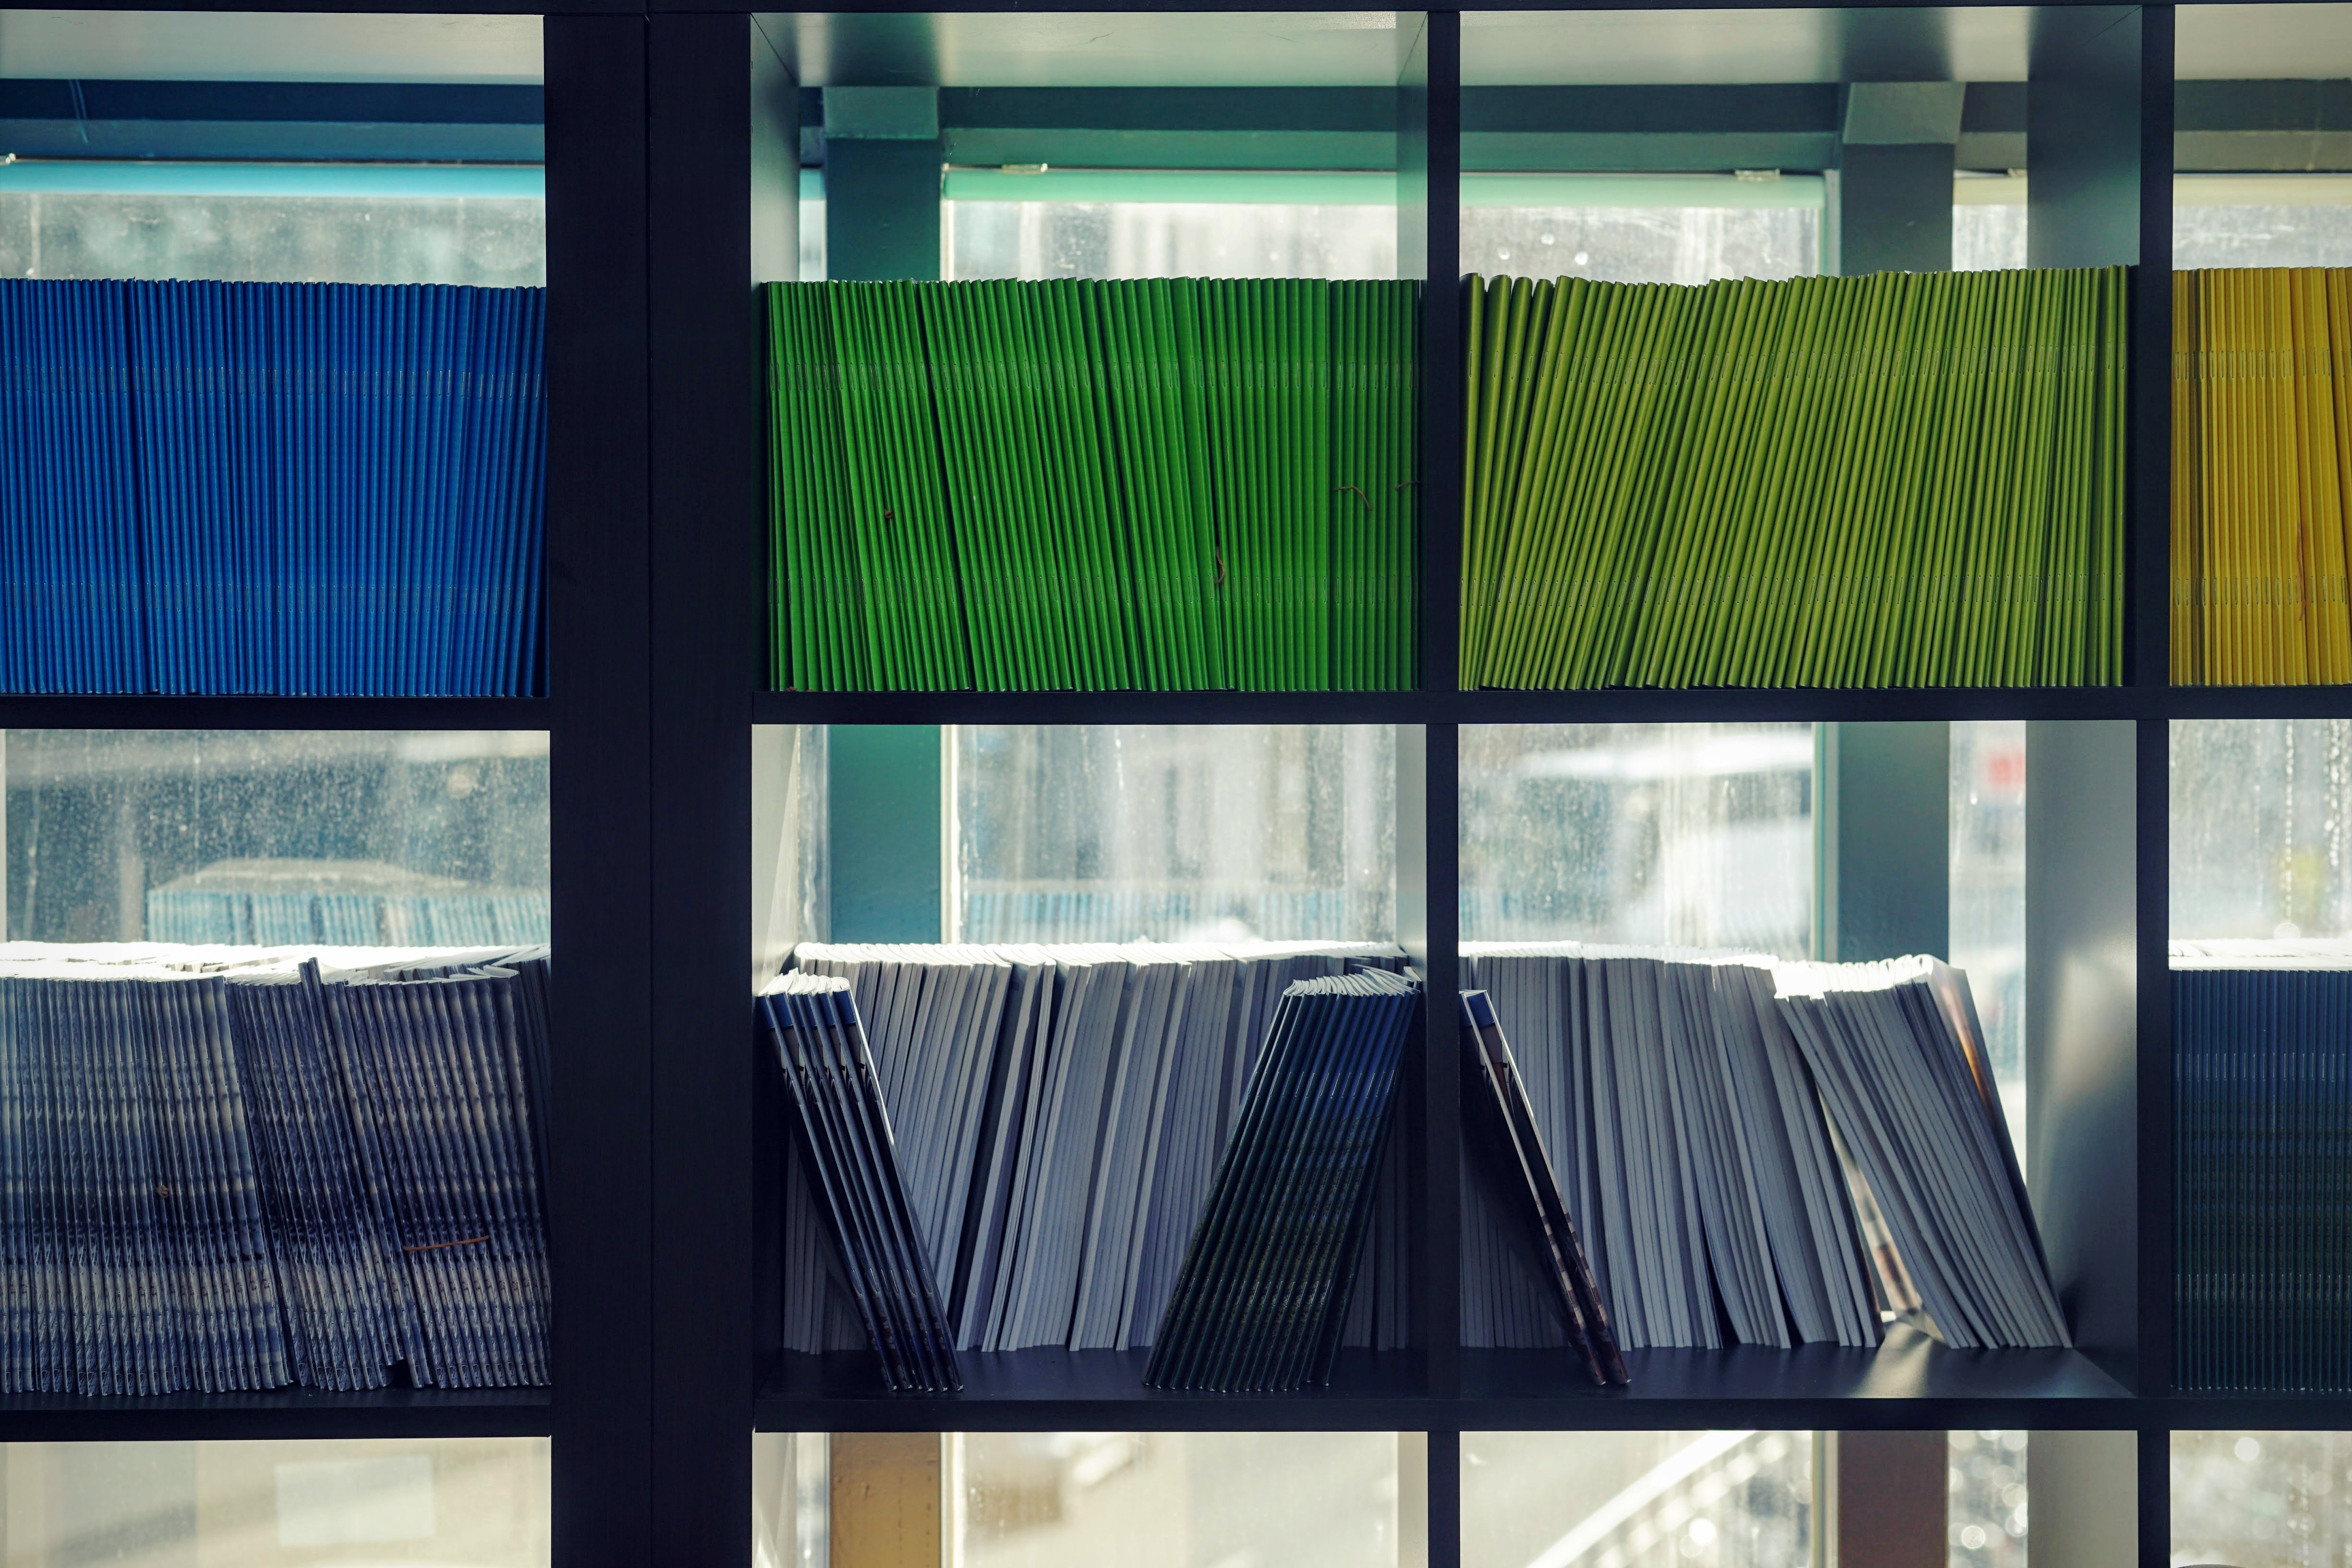 Colorful files on open shelving.